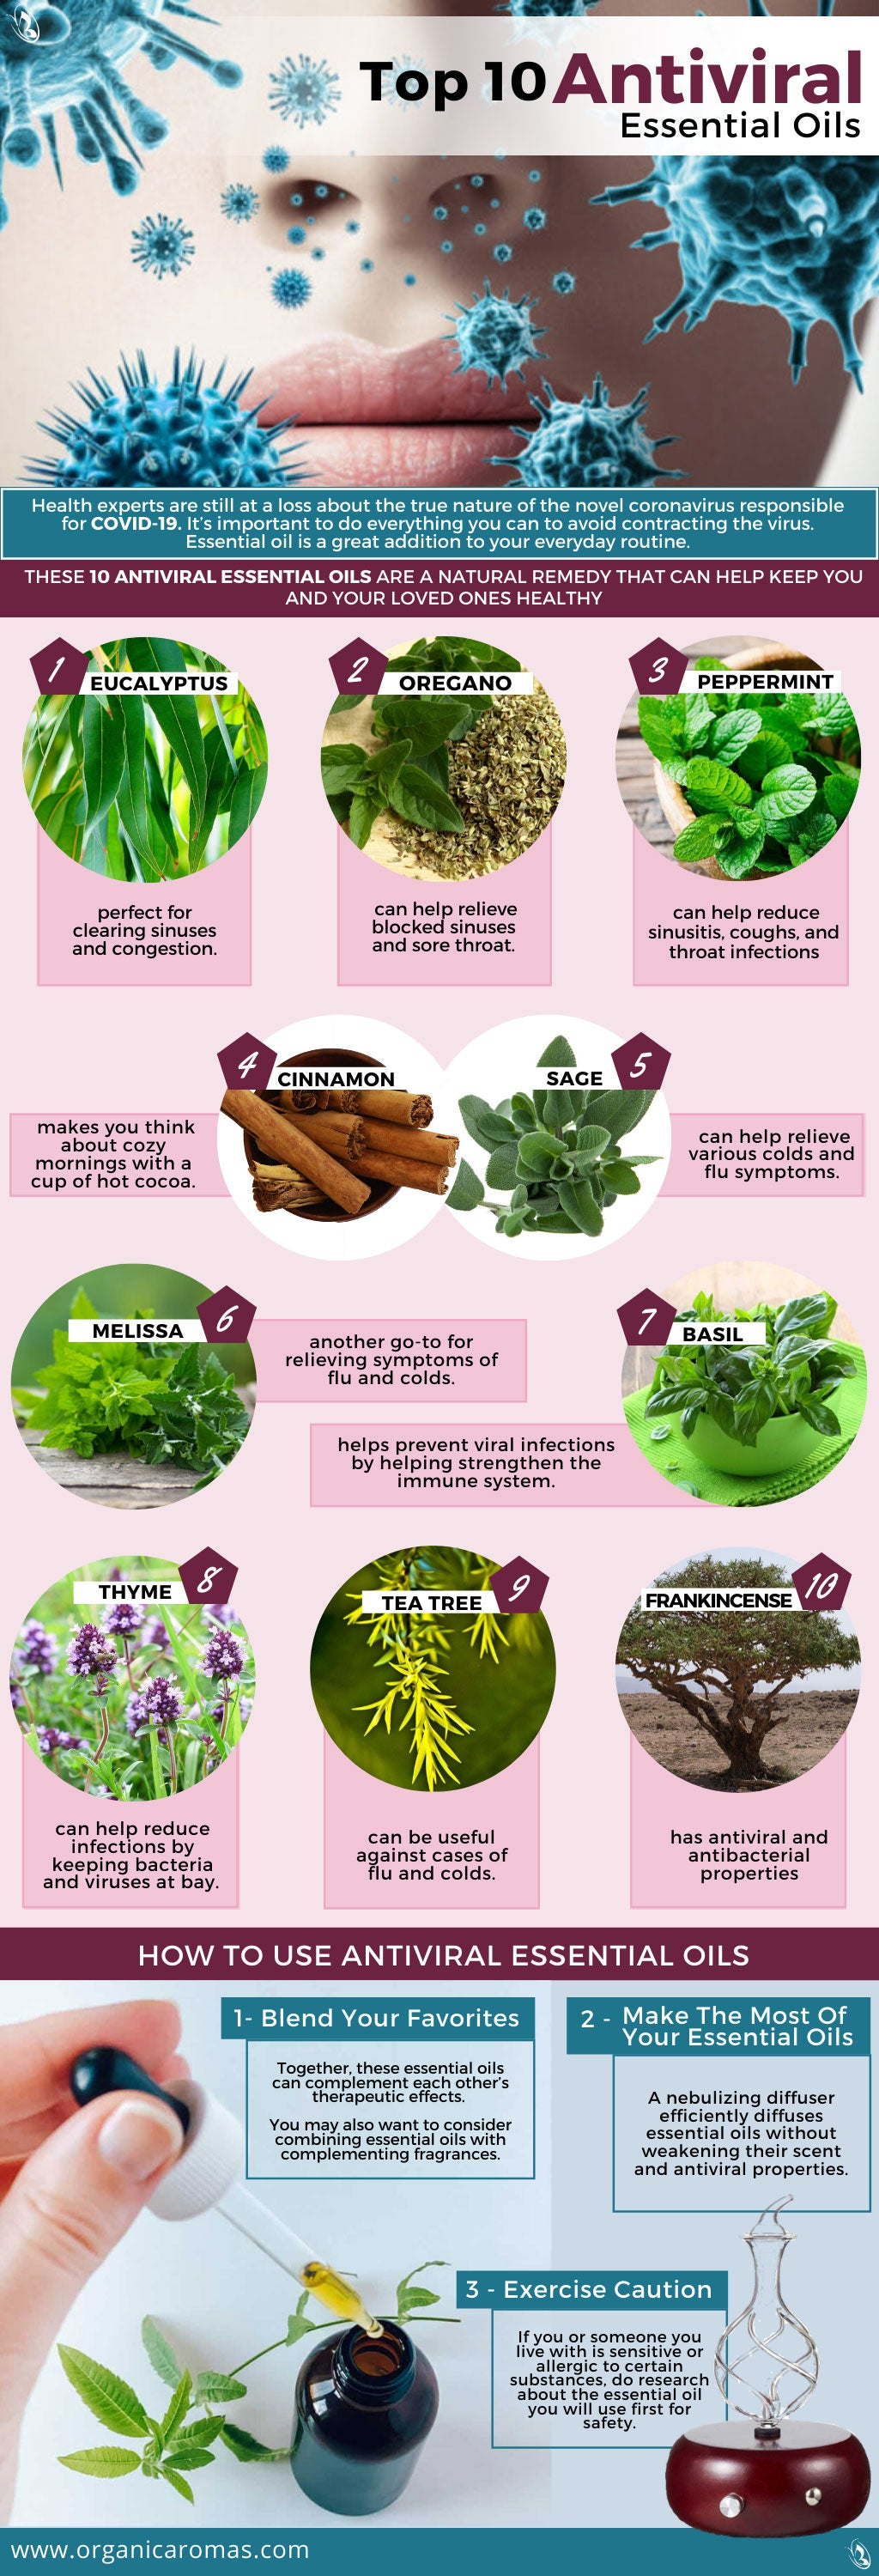 Top 10 Antiviral Essential Oils